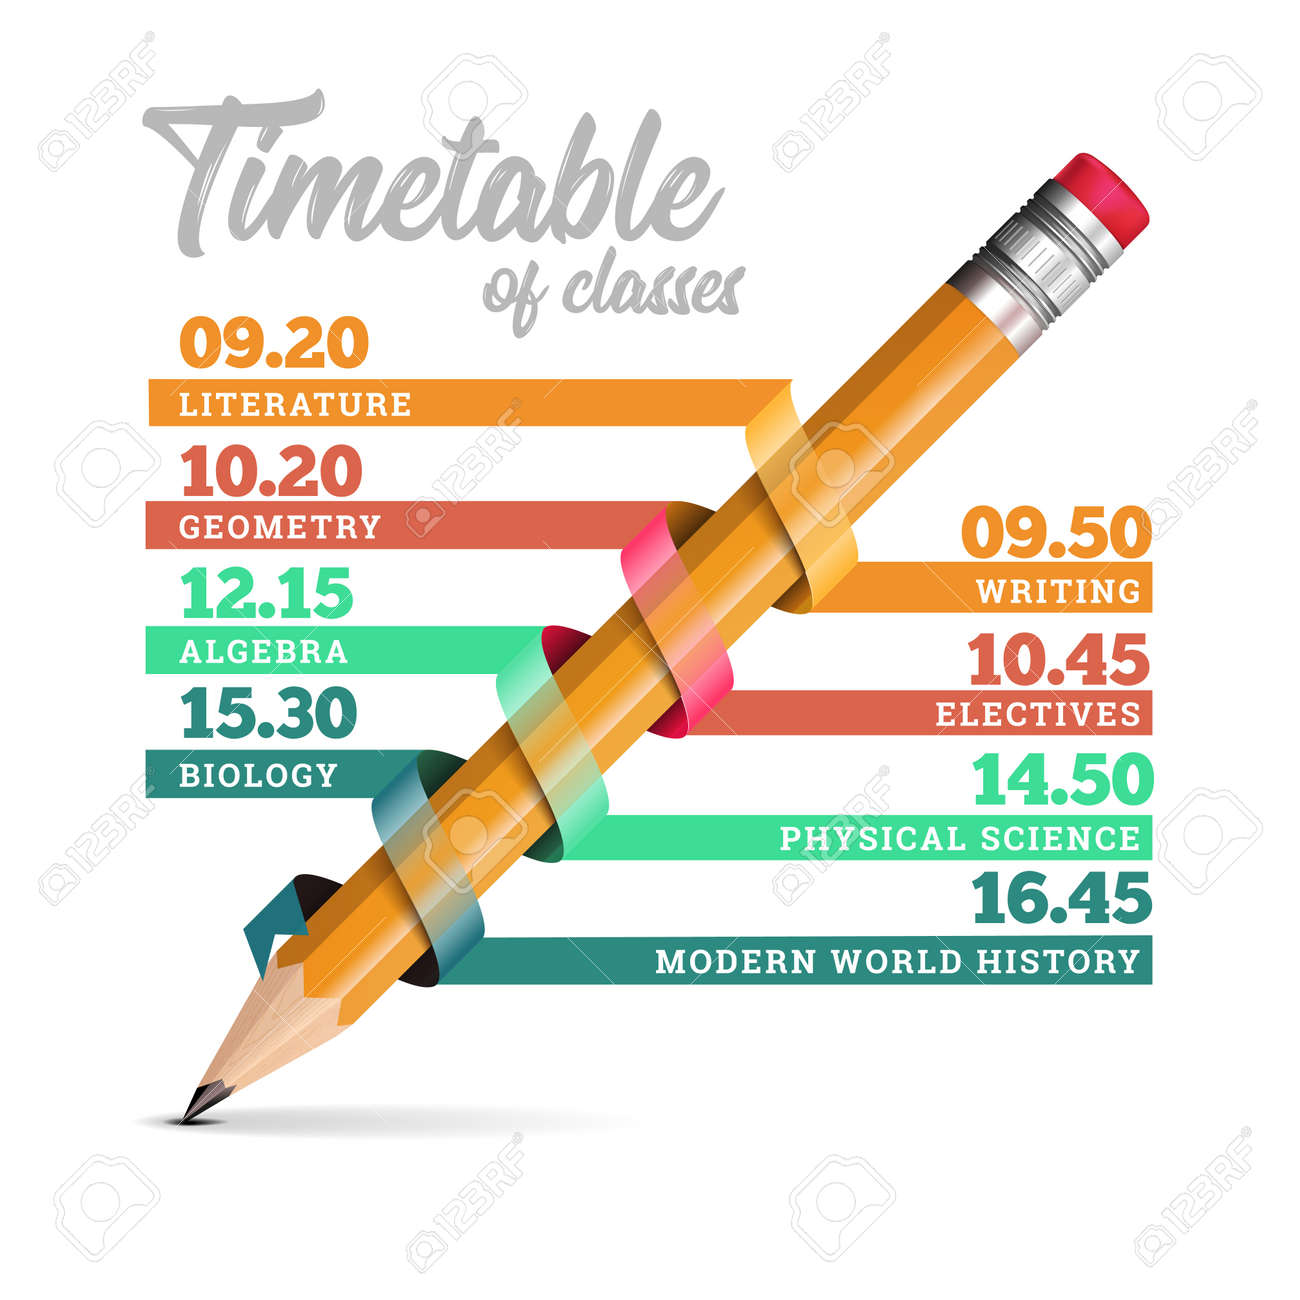 Timetable or timeline vector design template illustration with pencil. - 93081369